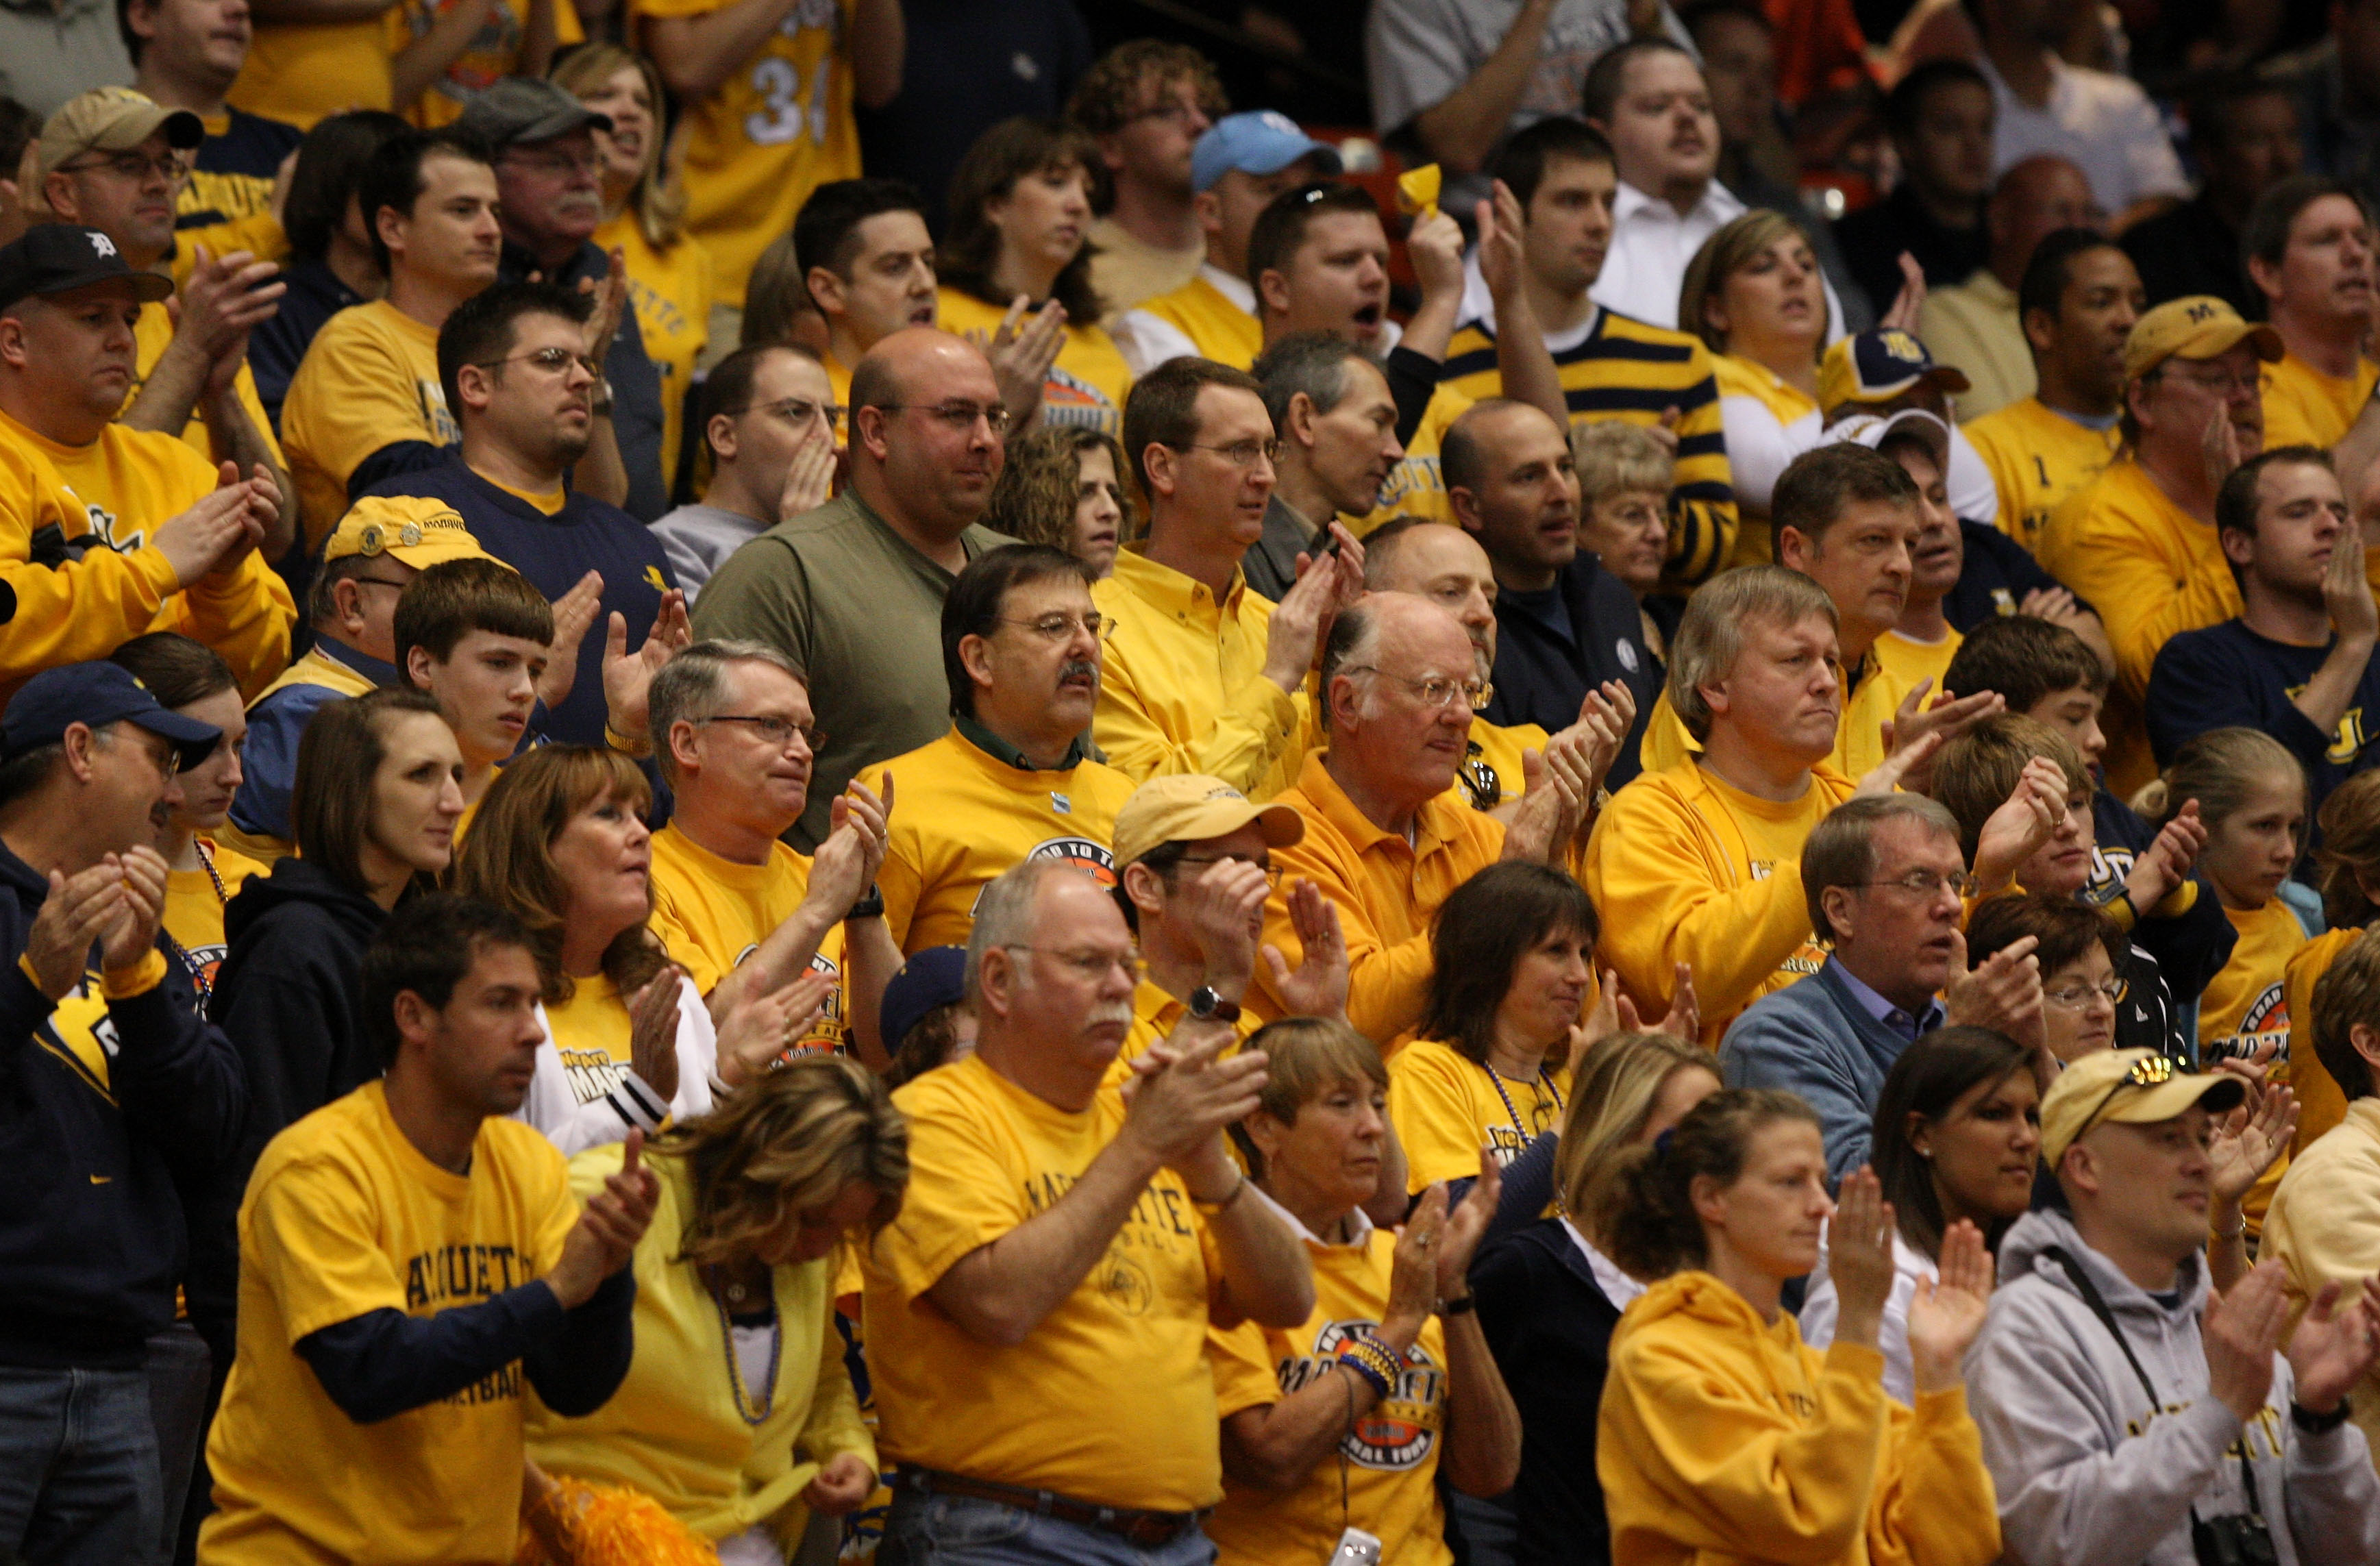 BOISE, ID - MARCH 20:  Fans of the Marquette Golden Eagles cheer during the game against the Utah State Aggies in the first round of the NCAA Division I Men's Basketball Tournament at the Taco Bell Arena on March 20, 2009 in Boise, Idaho.  (Photo by Jed J